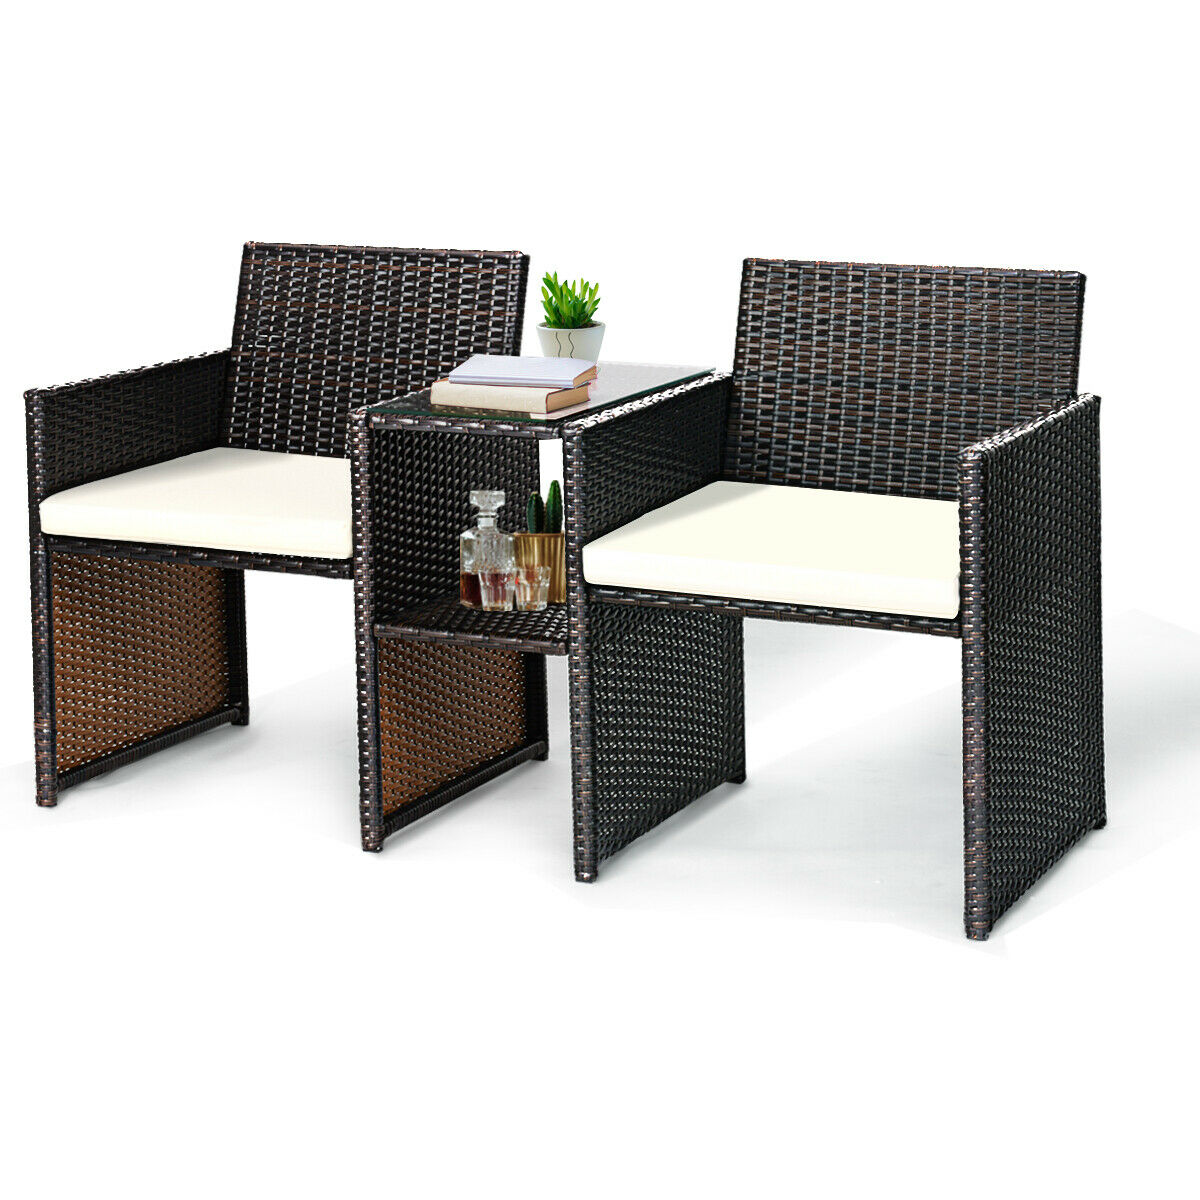 Costway Patio Rattan Loveseat Table Chairs Chat Set Seat Sofa Conversation Cushioned